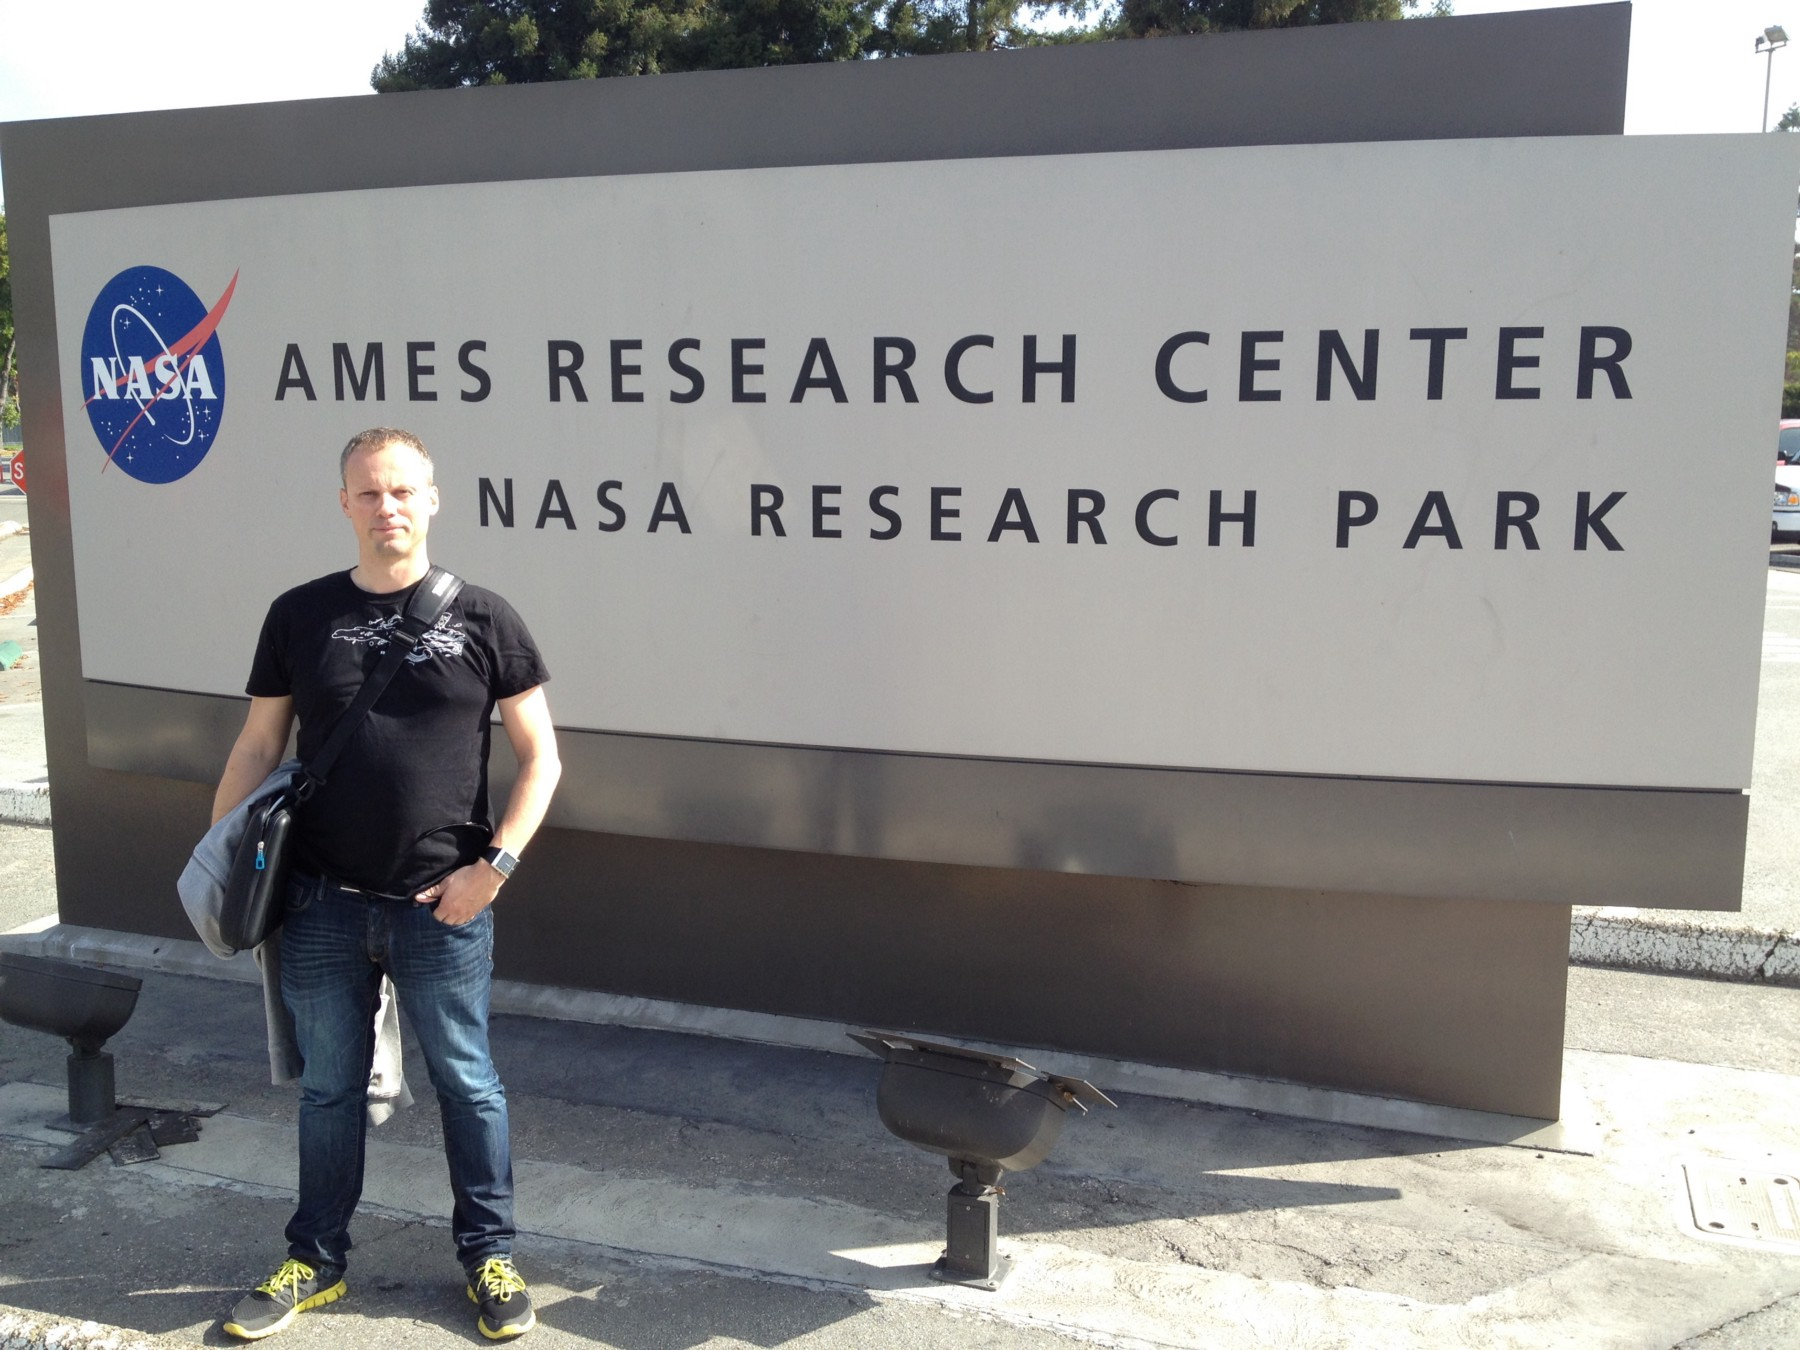 nasa ames.jpeg